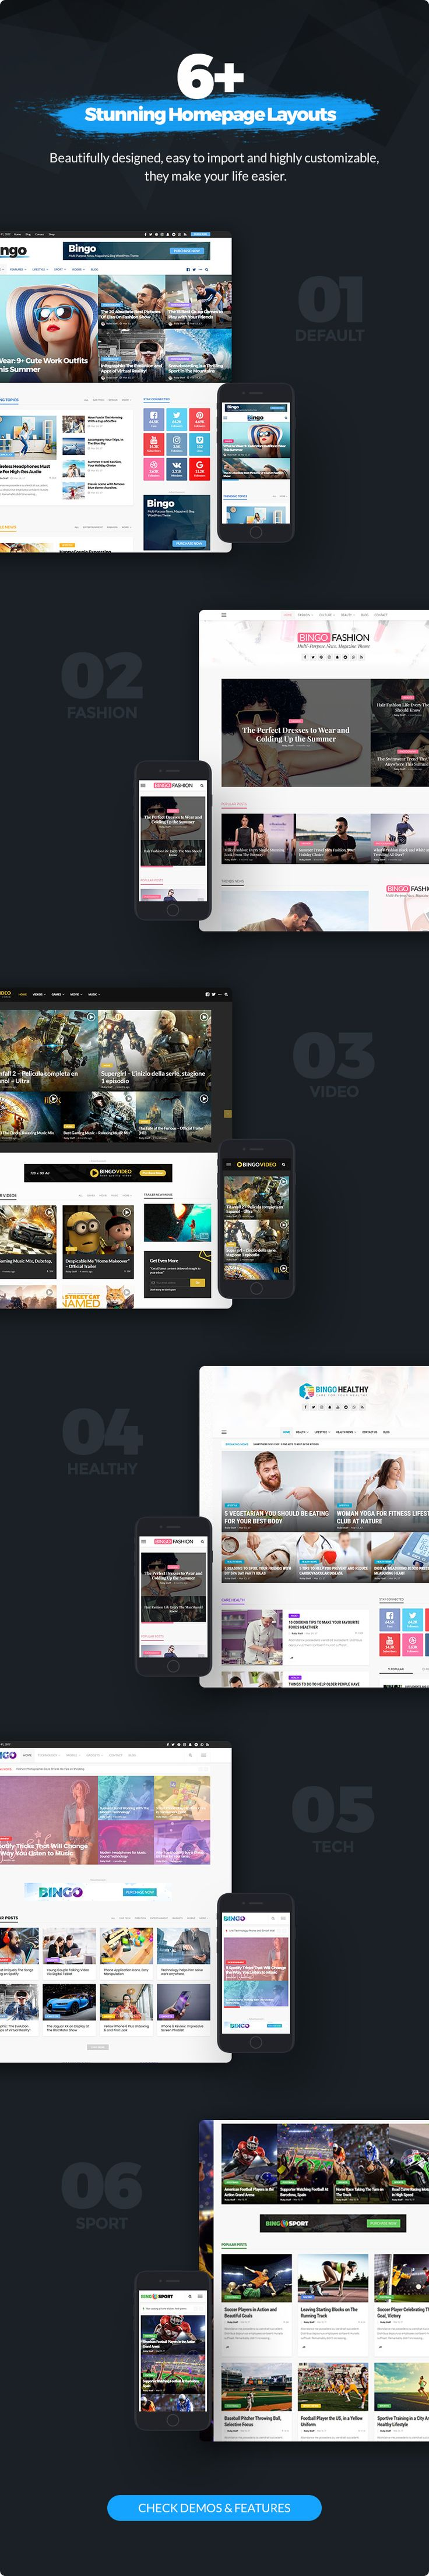 Bingo is a Multi-Purpose Newspaper, Magazine WordPress Theme best suited for sites that deliver news about     Technology, Fashion, Sport, Video, Heal…